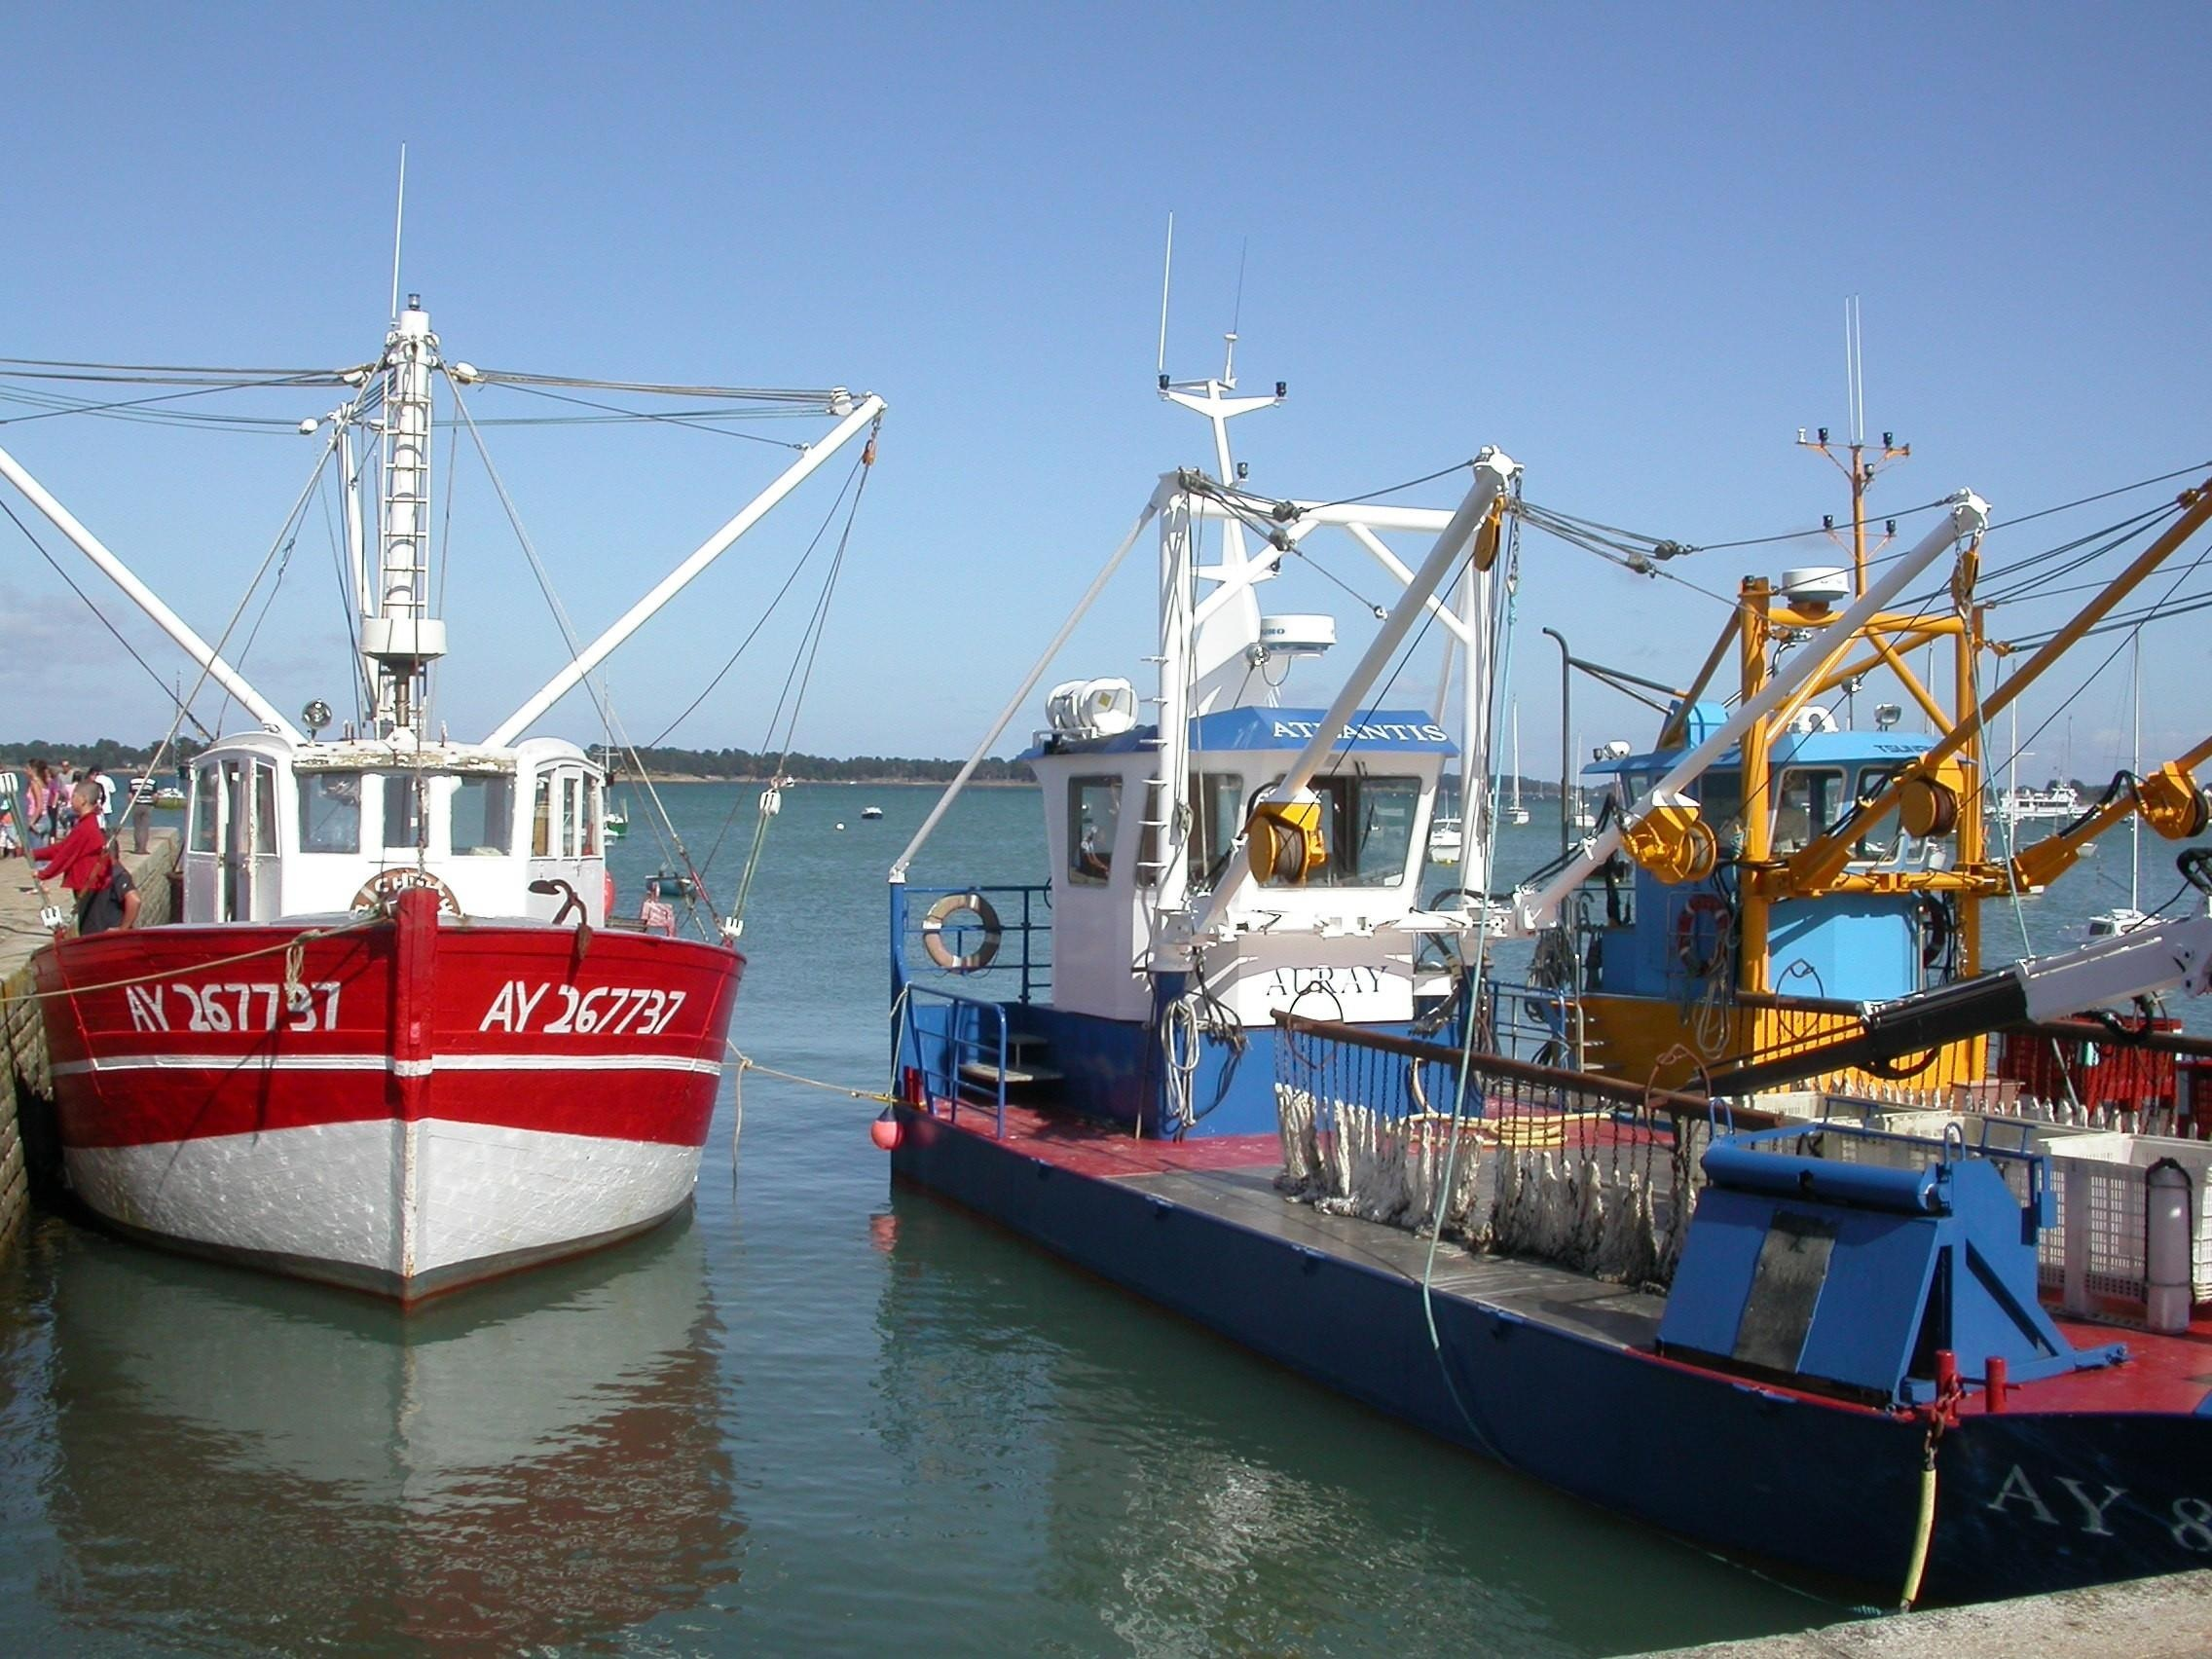 Boats on the port photo